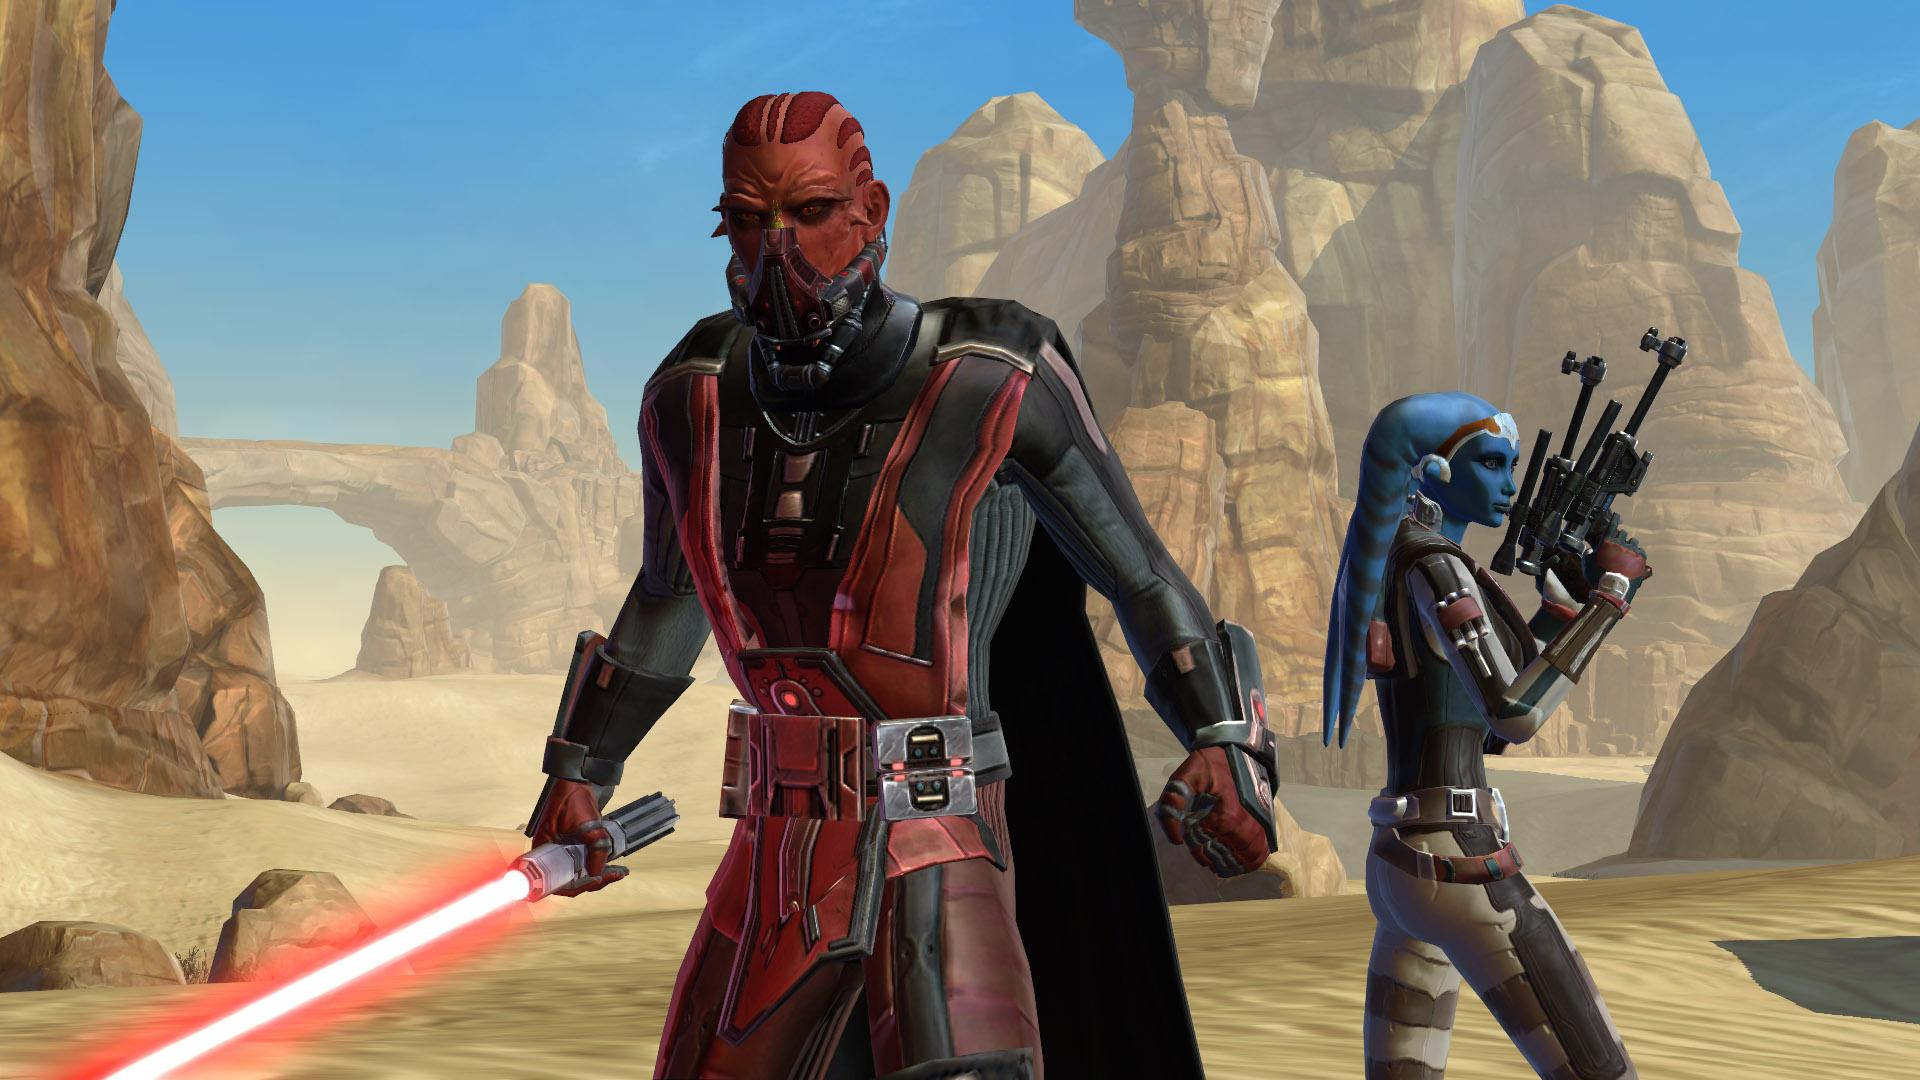 Swtor Datacron Locations Guide Page 13 Gamesradar